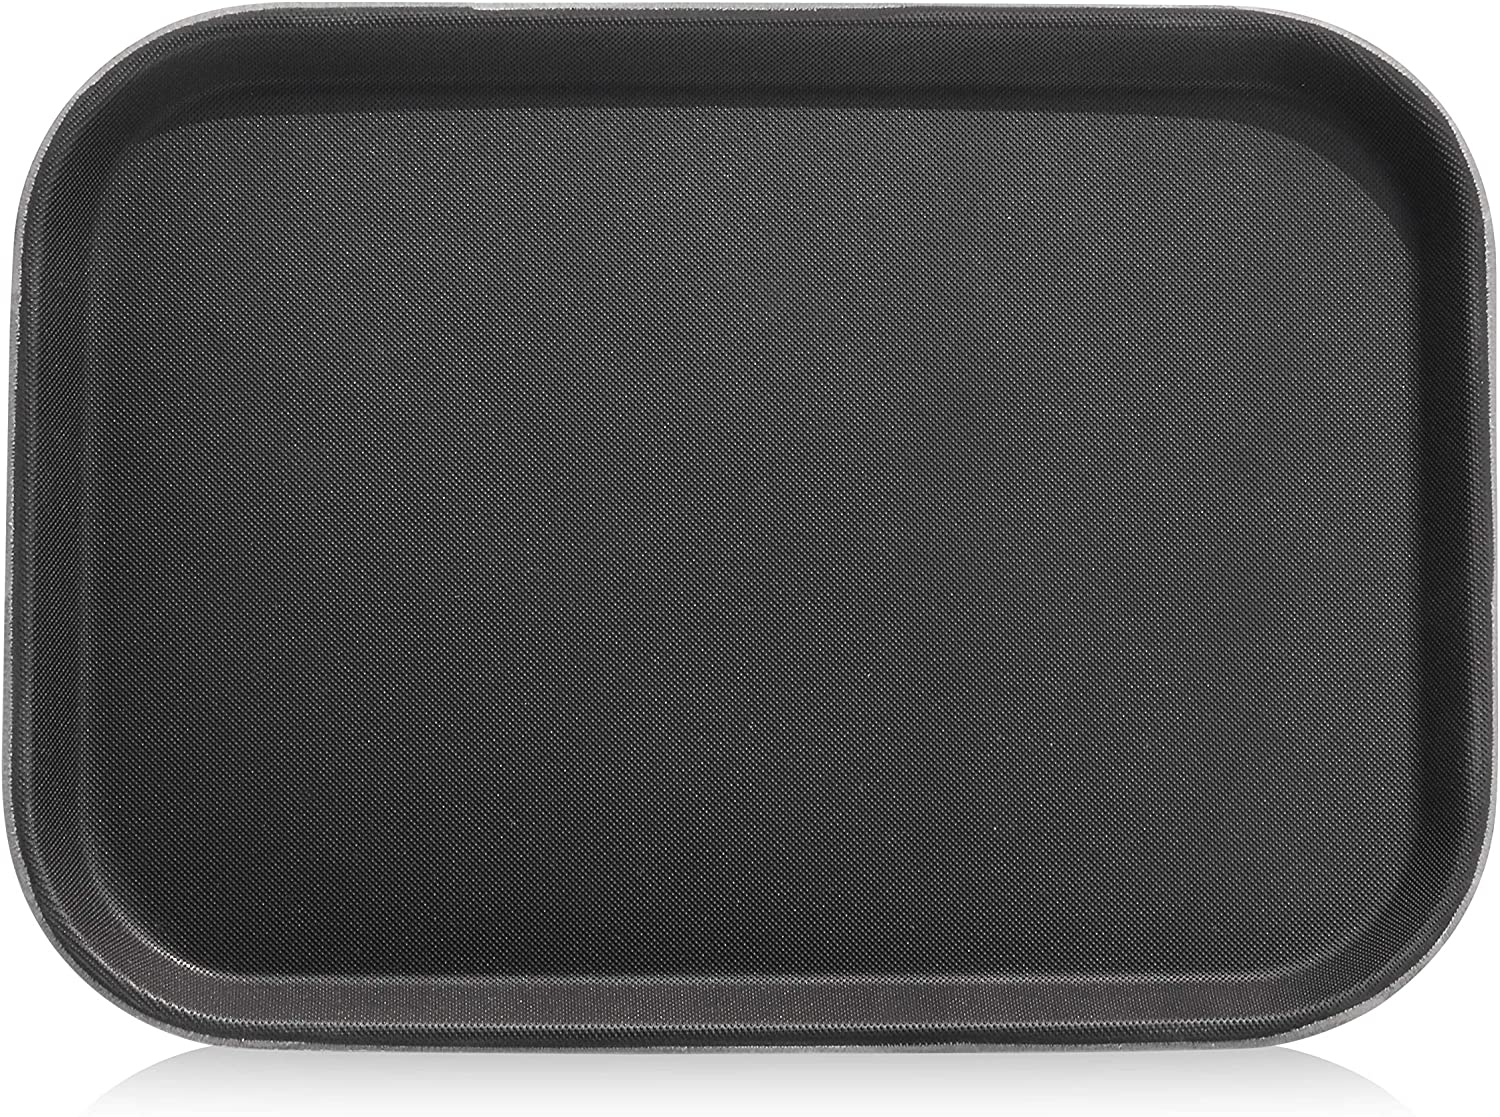 New Star Foodservice 24852 Non-Slip Tray, Plastic, Rubber Lined, Rectangular, 10 by 14-Inch, Black